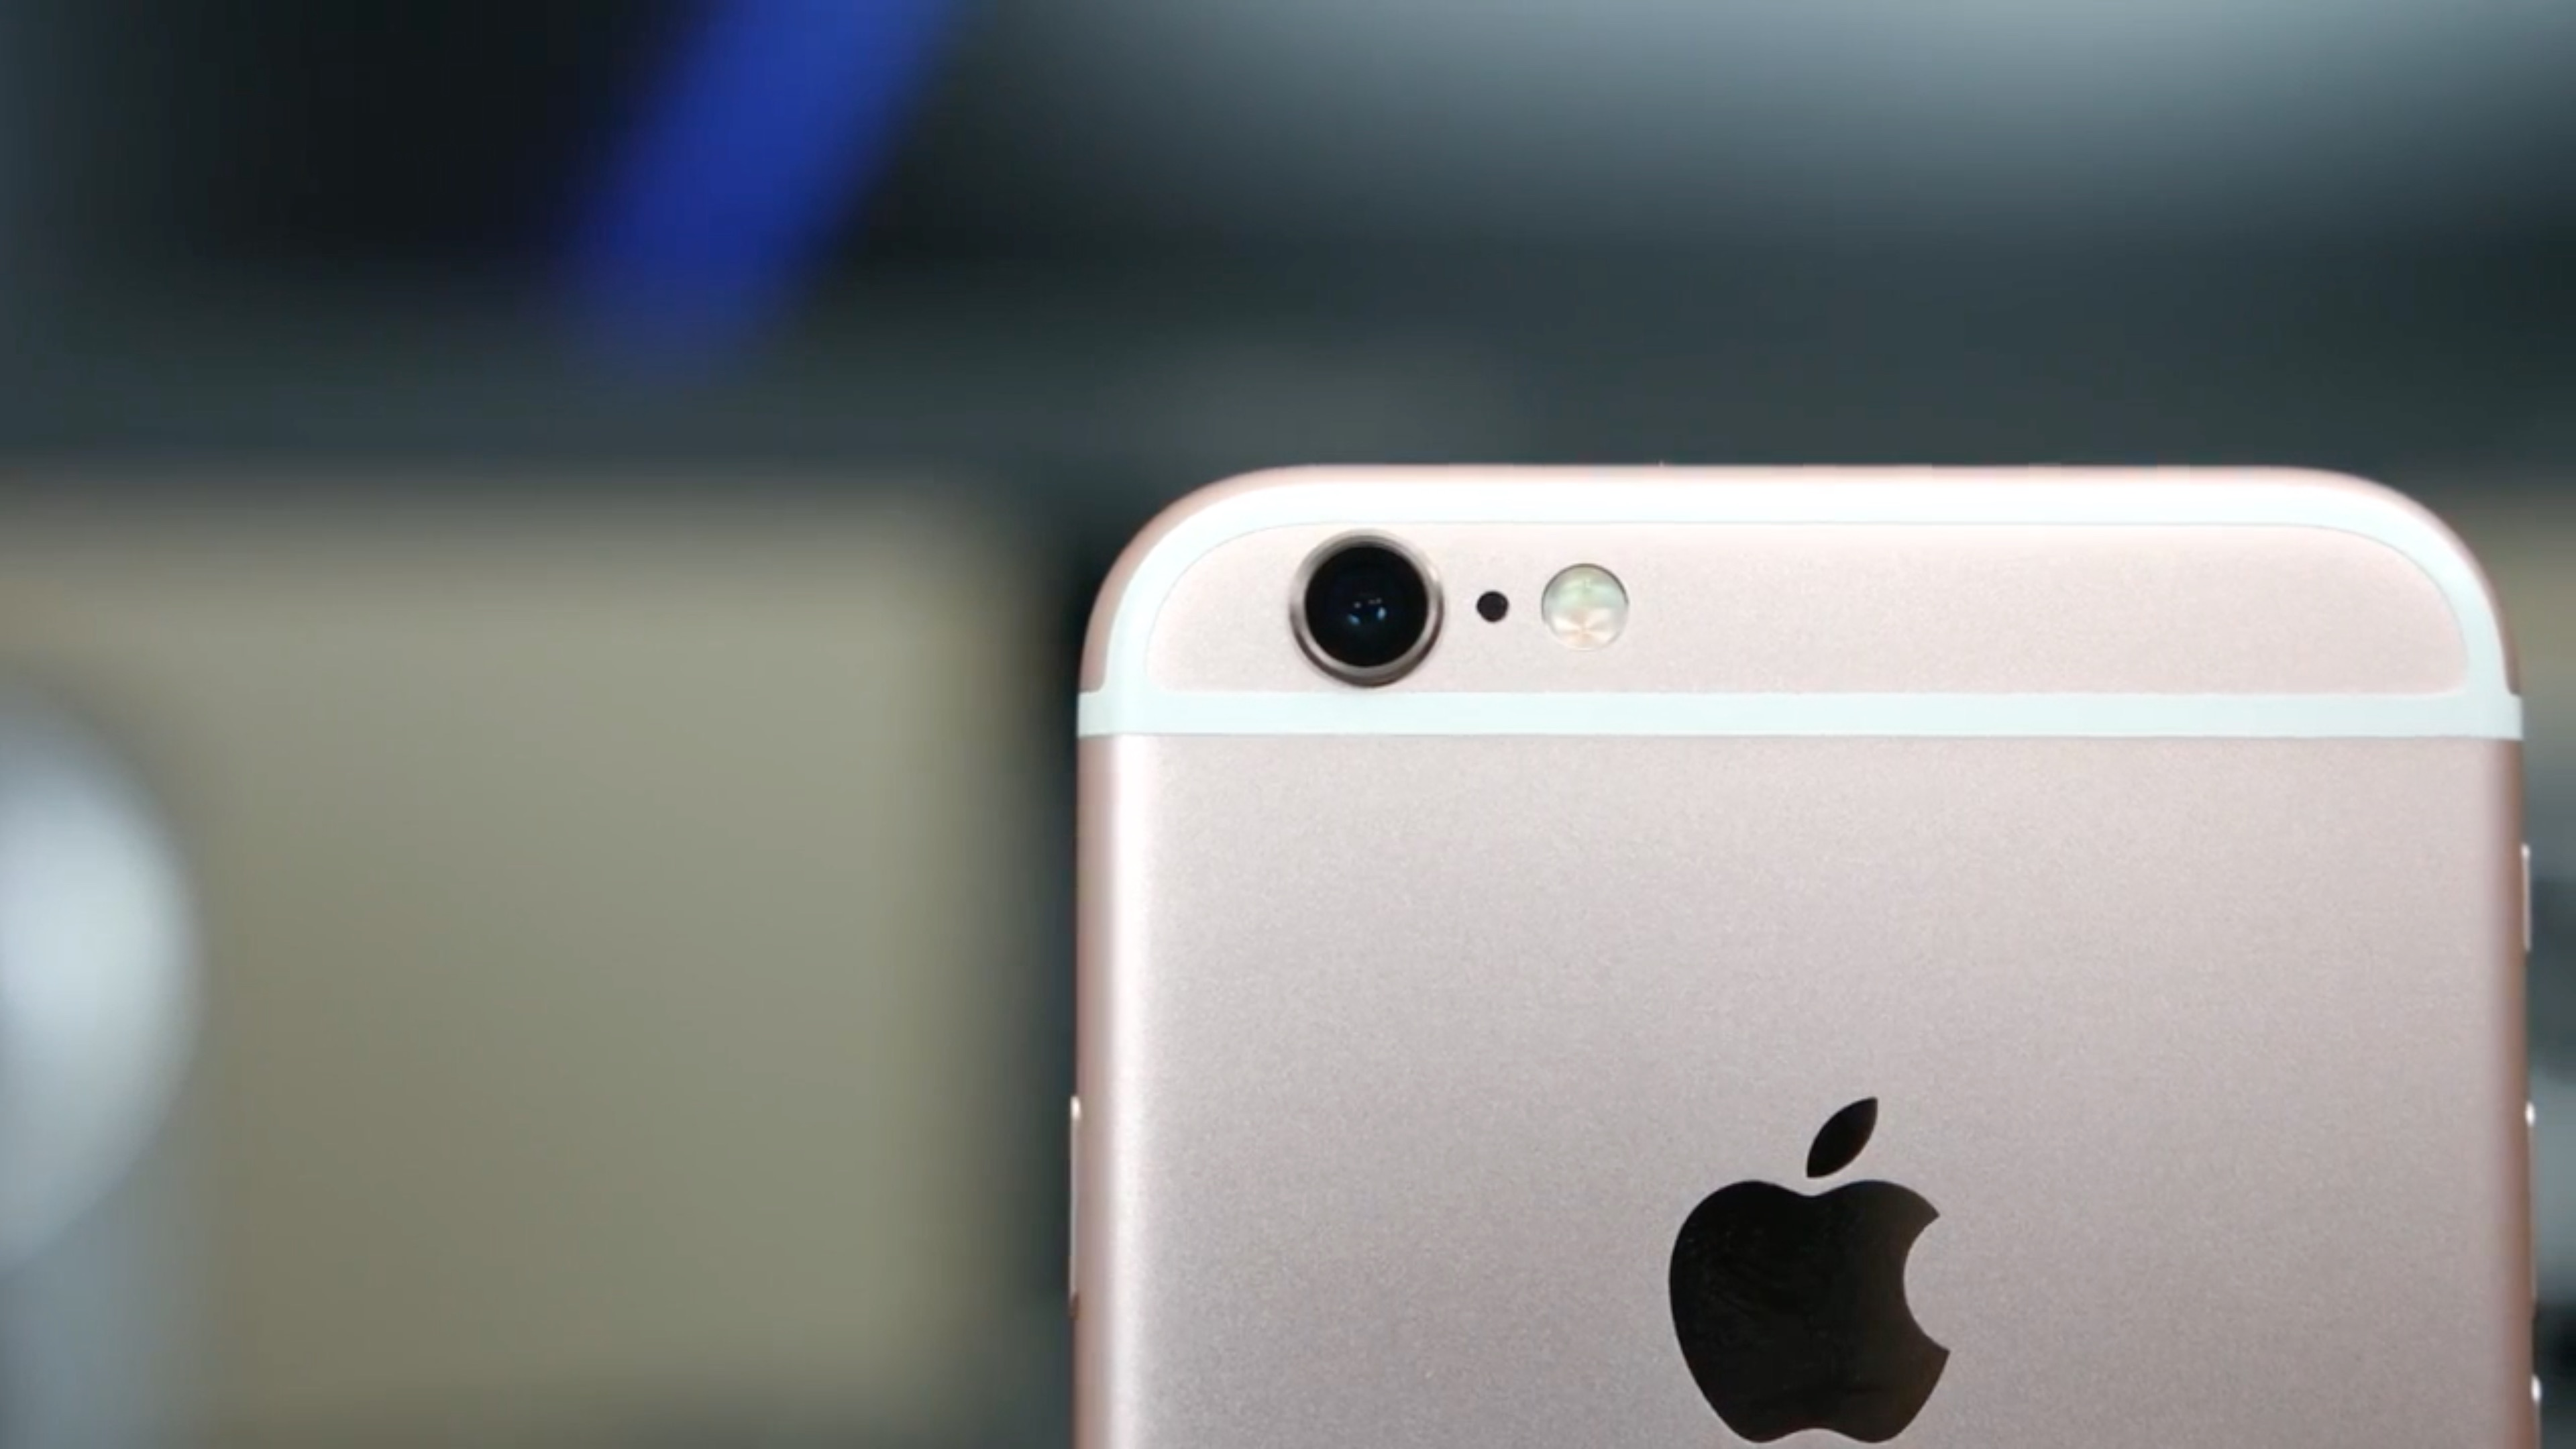 Iphone 6s Iphone 6s Plus Camera Review Phonedog